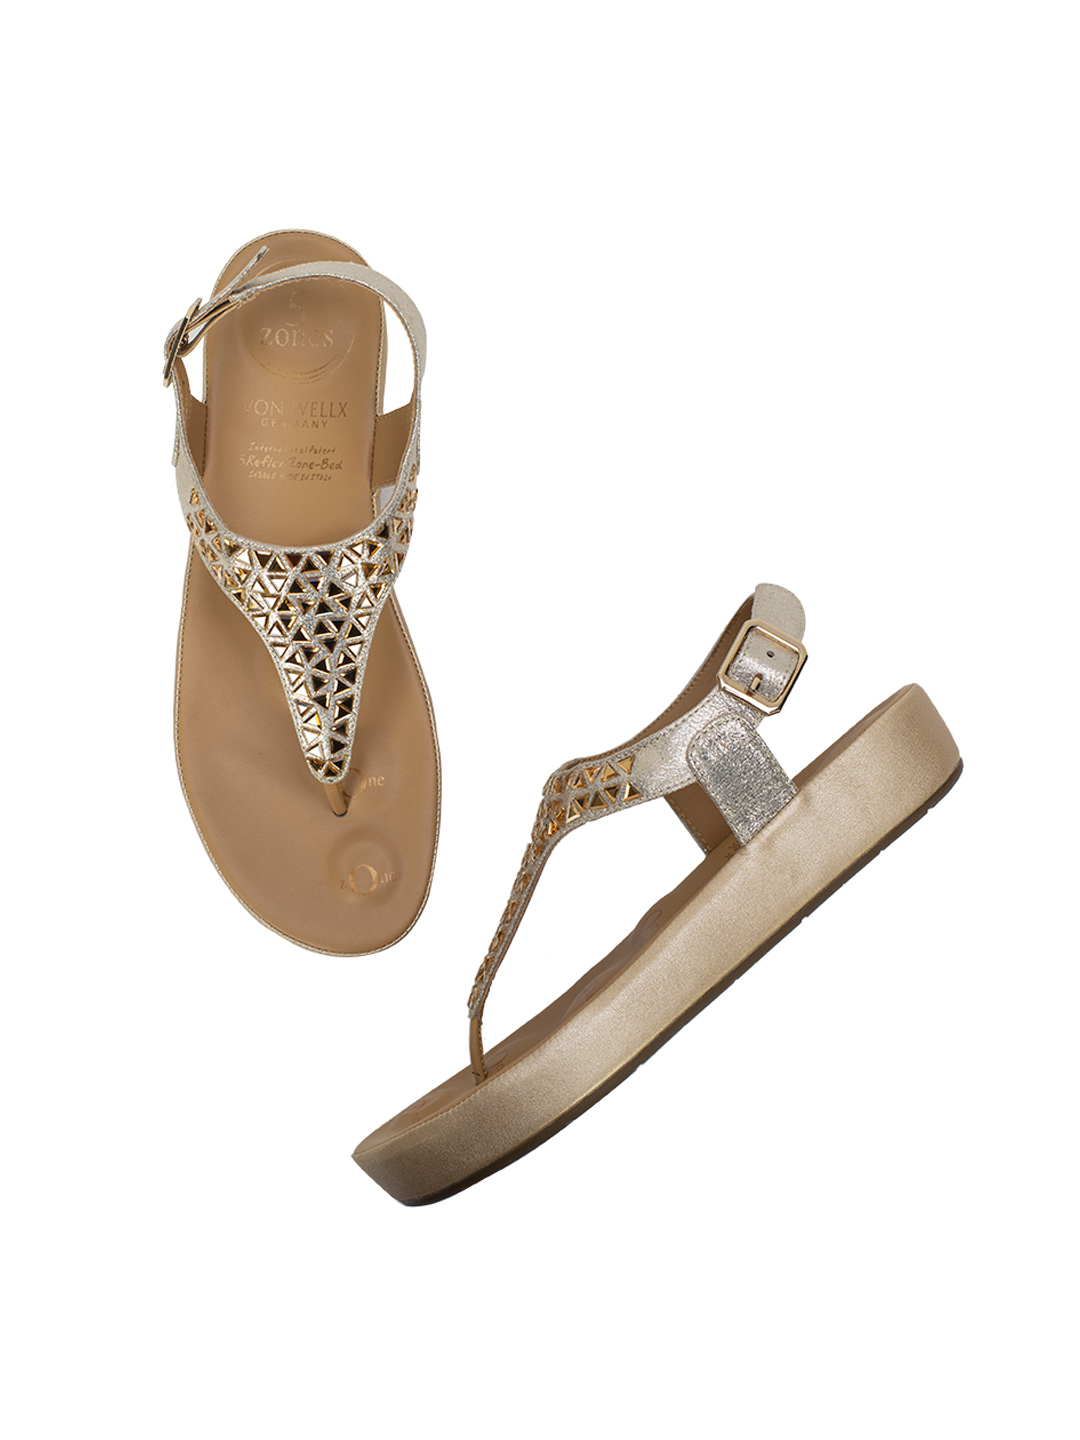 Buy Von Wellx Germany Comfort Haven Golden Sandals Online in Ludhiana